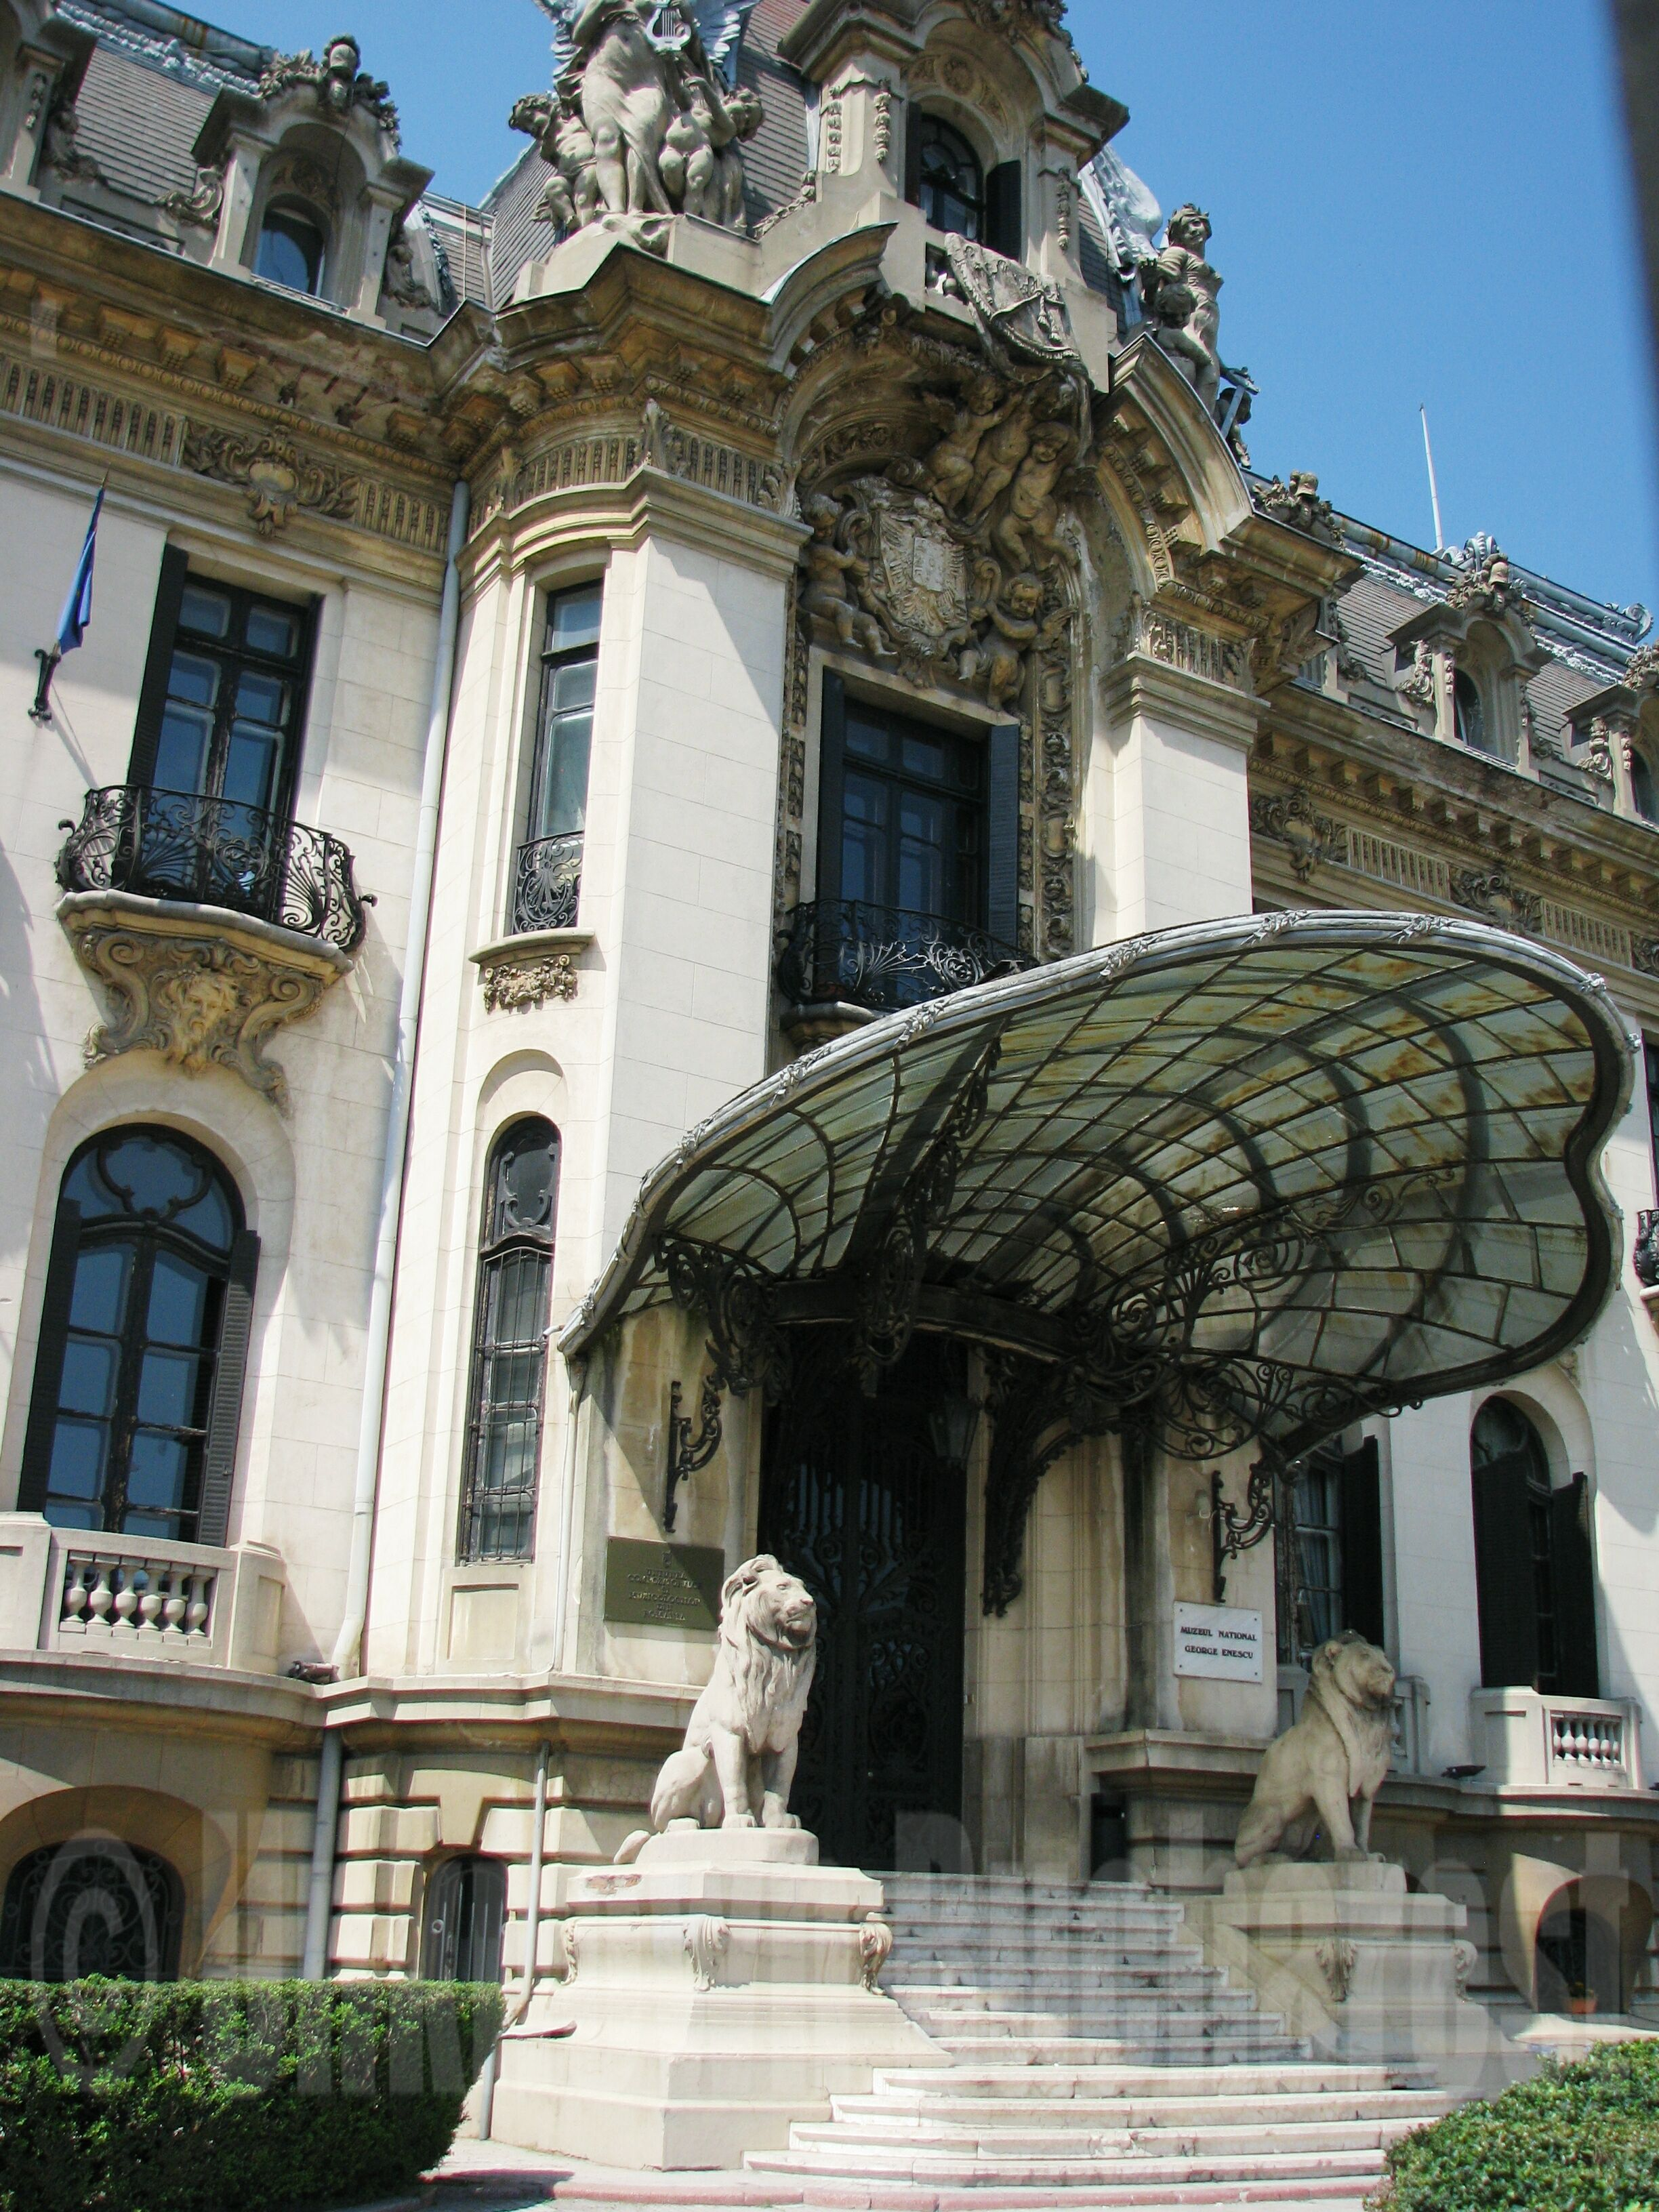 Cantacuzino Palace 1906 George Enescu National